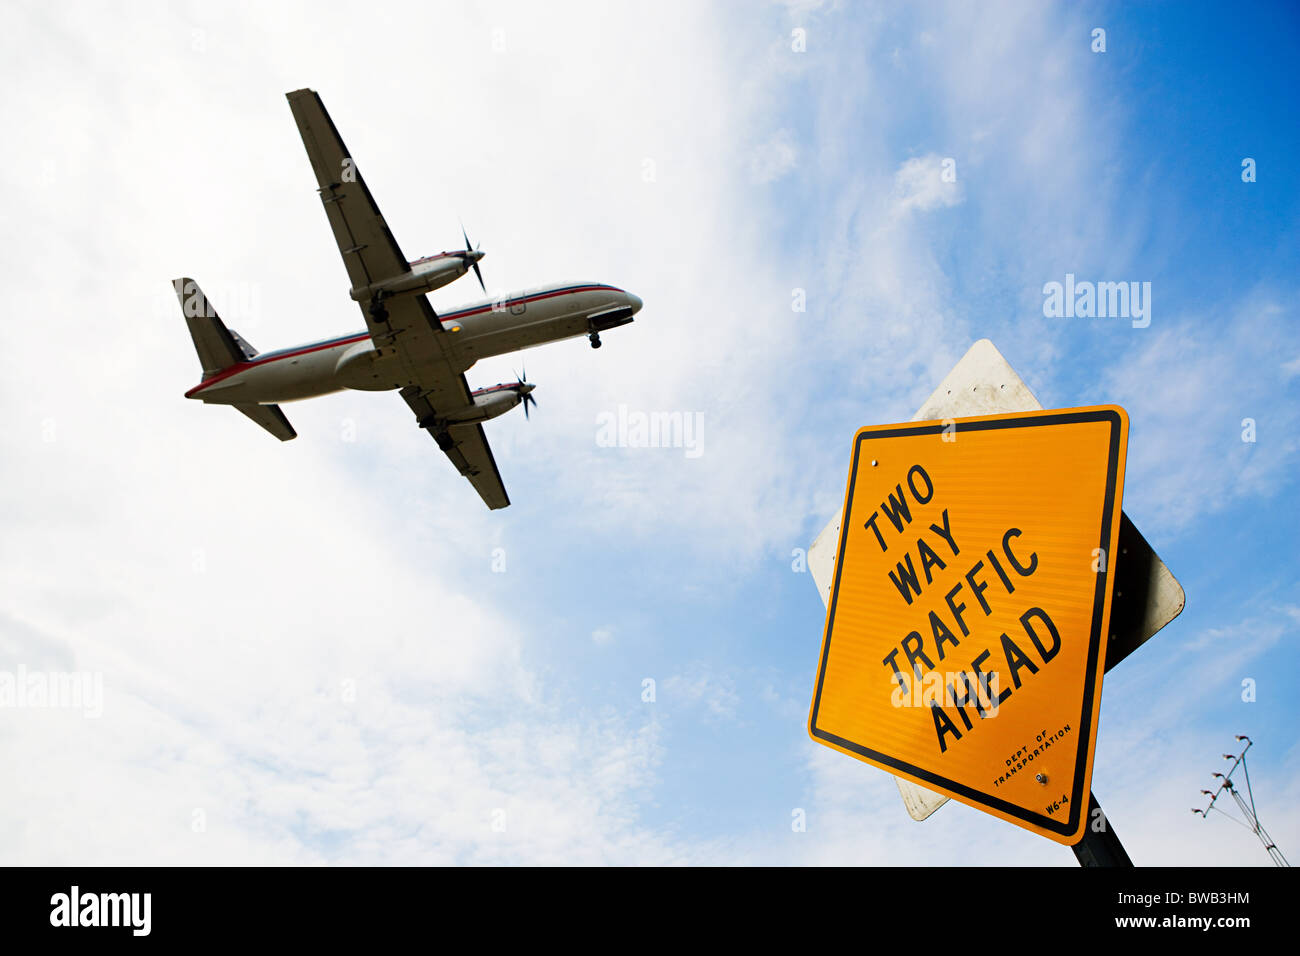 Airplane and sign - Stock Image